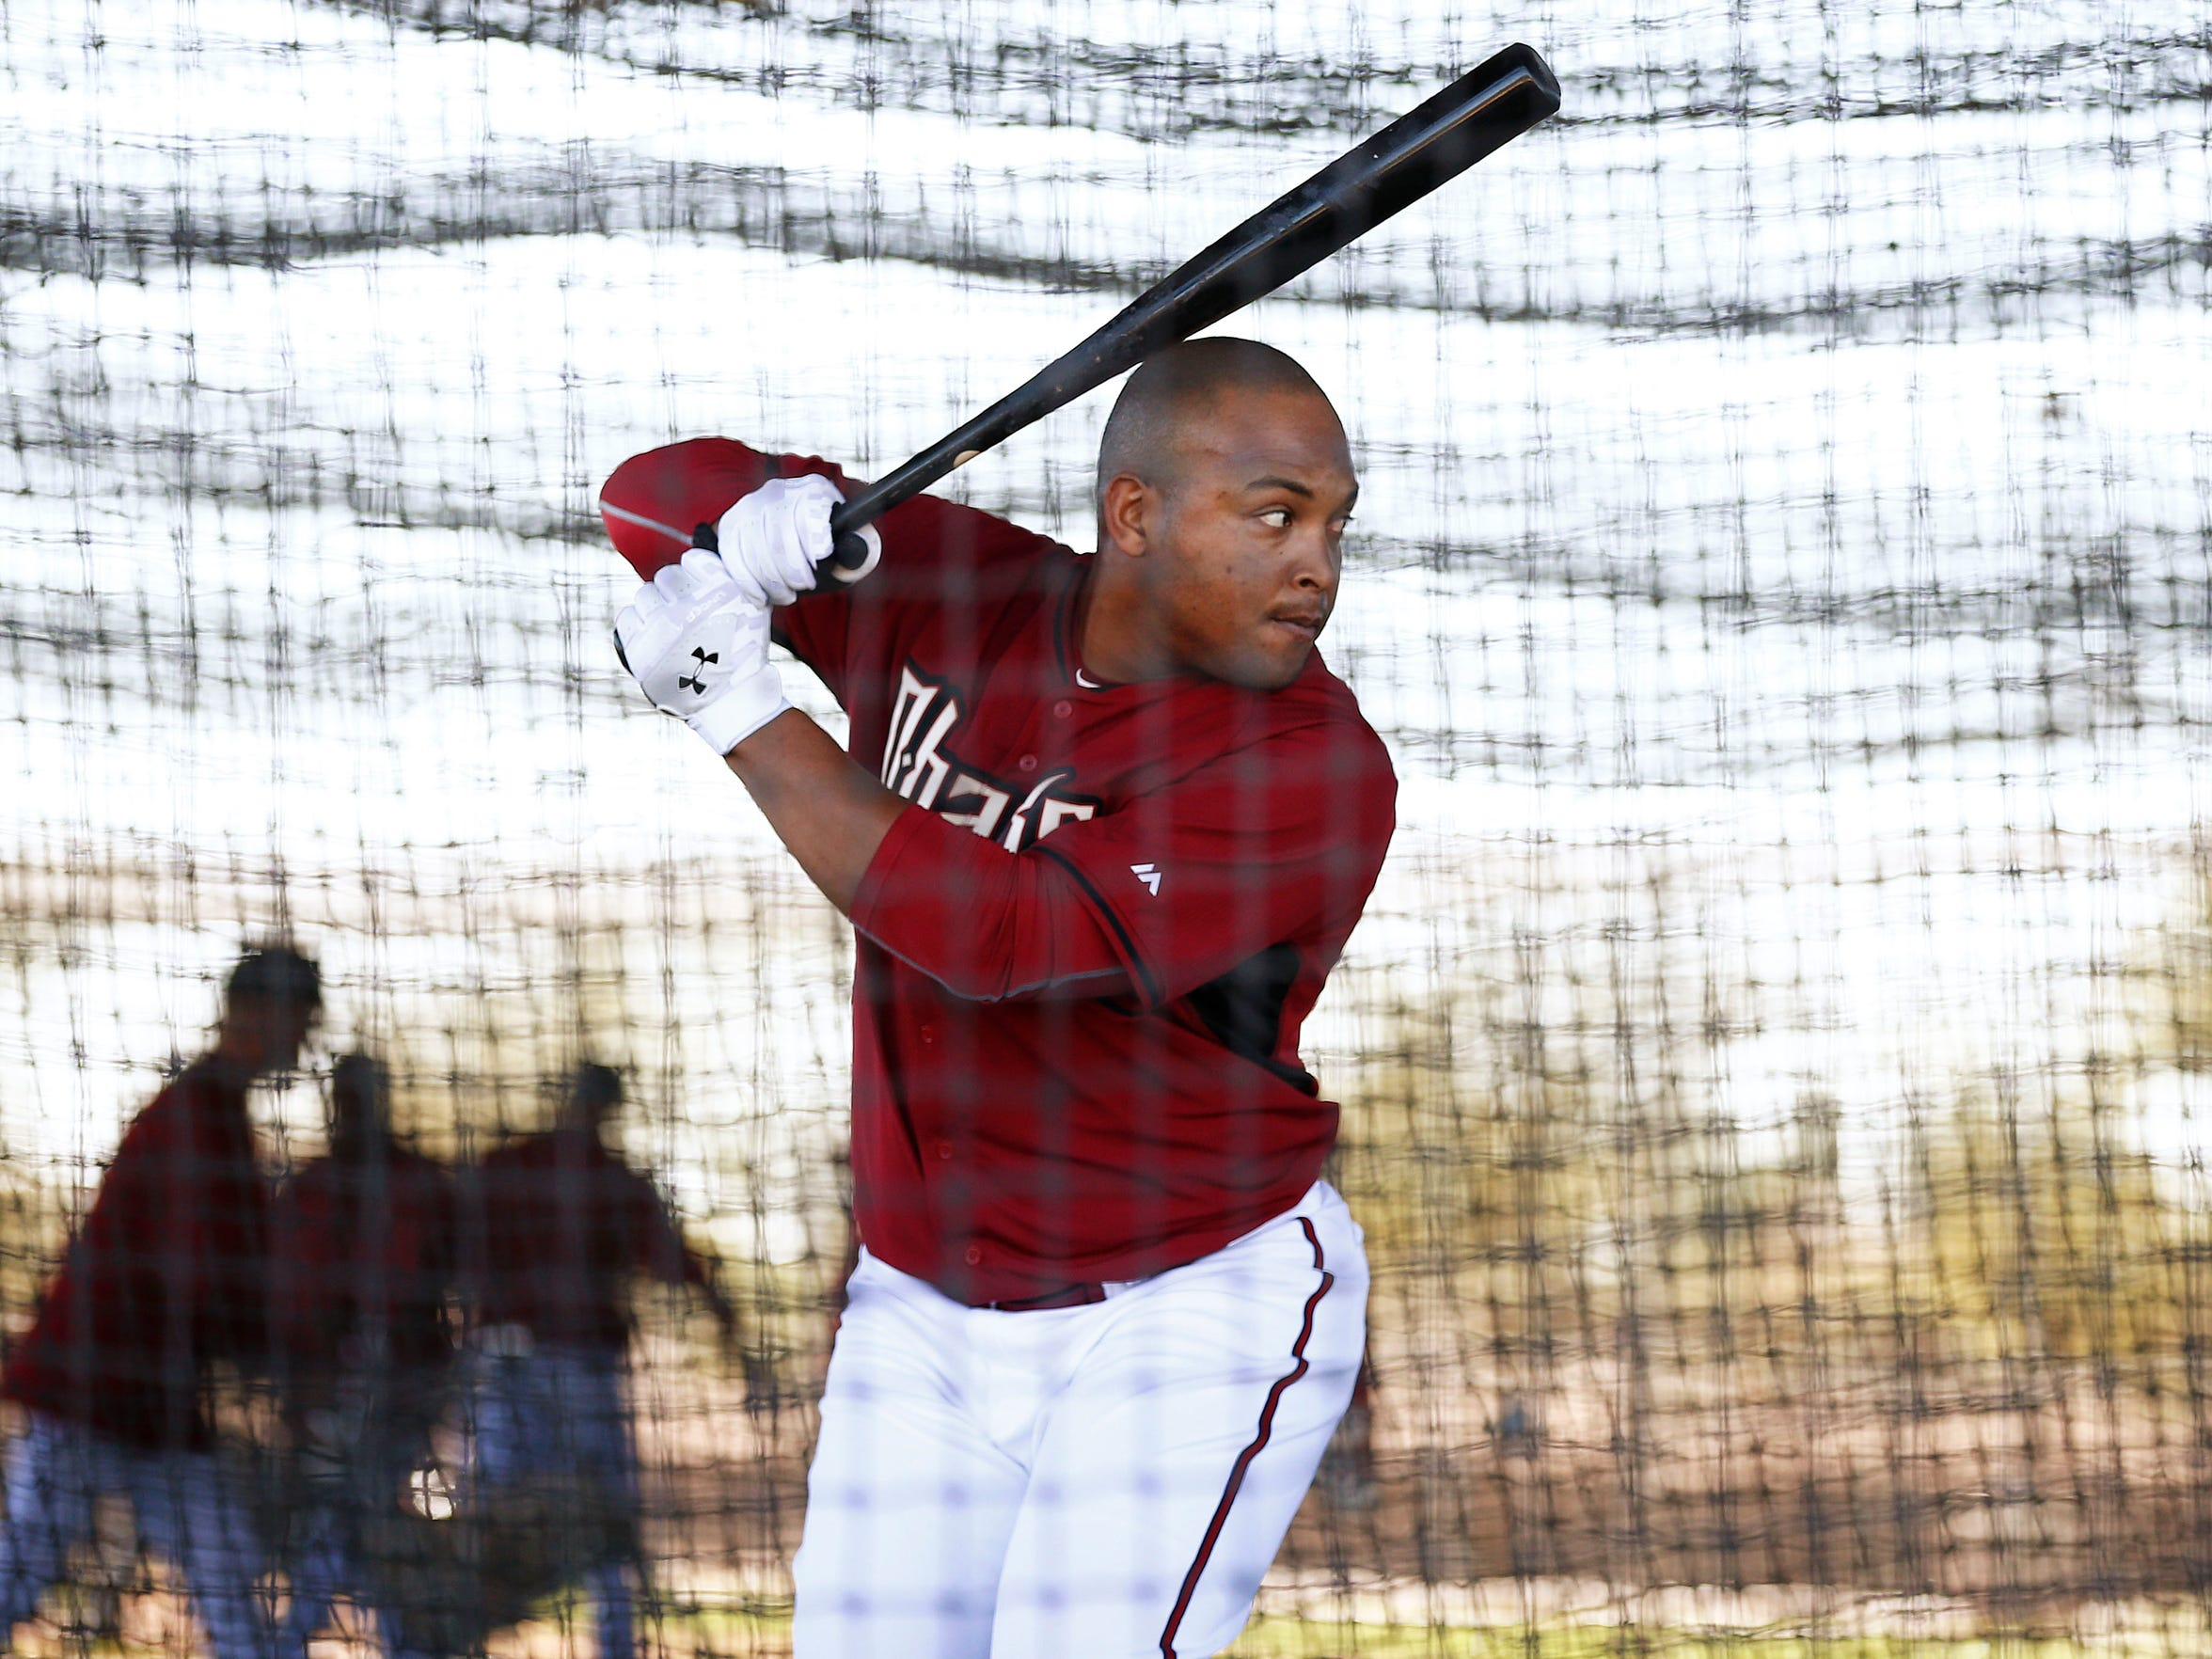 Yasmany Tomas is sure to impress with his power.